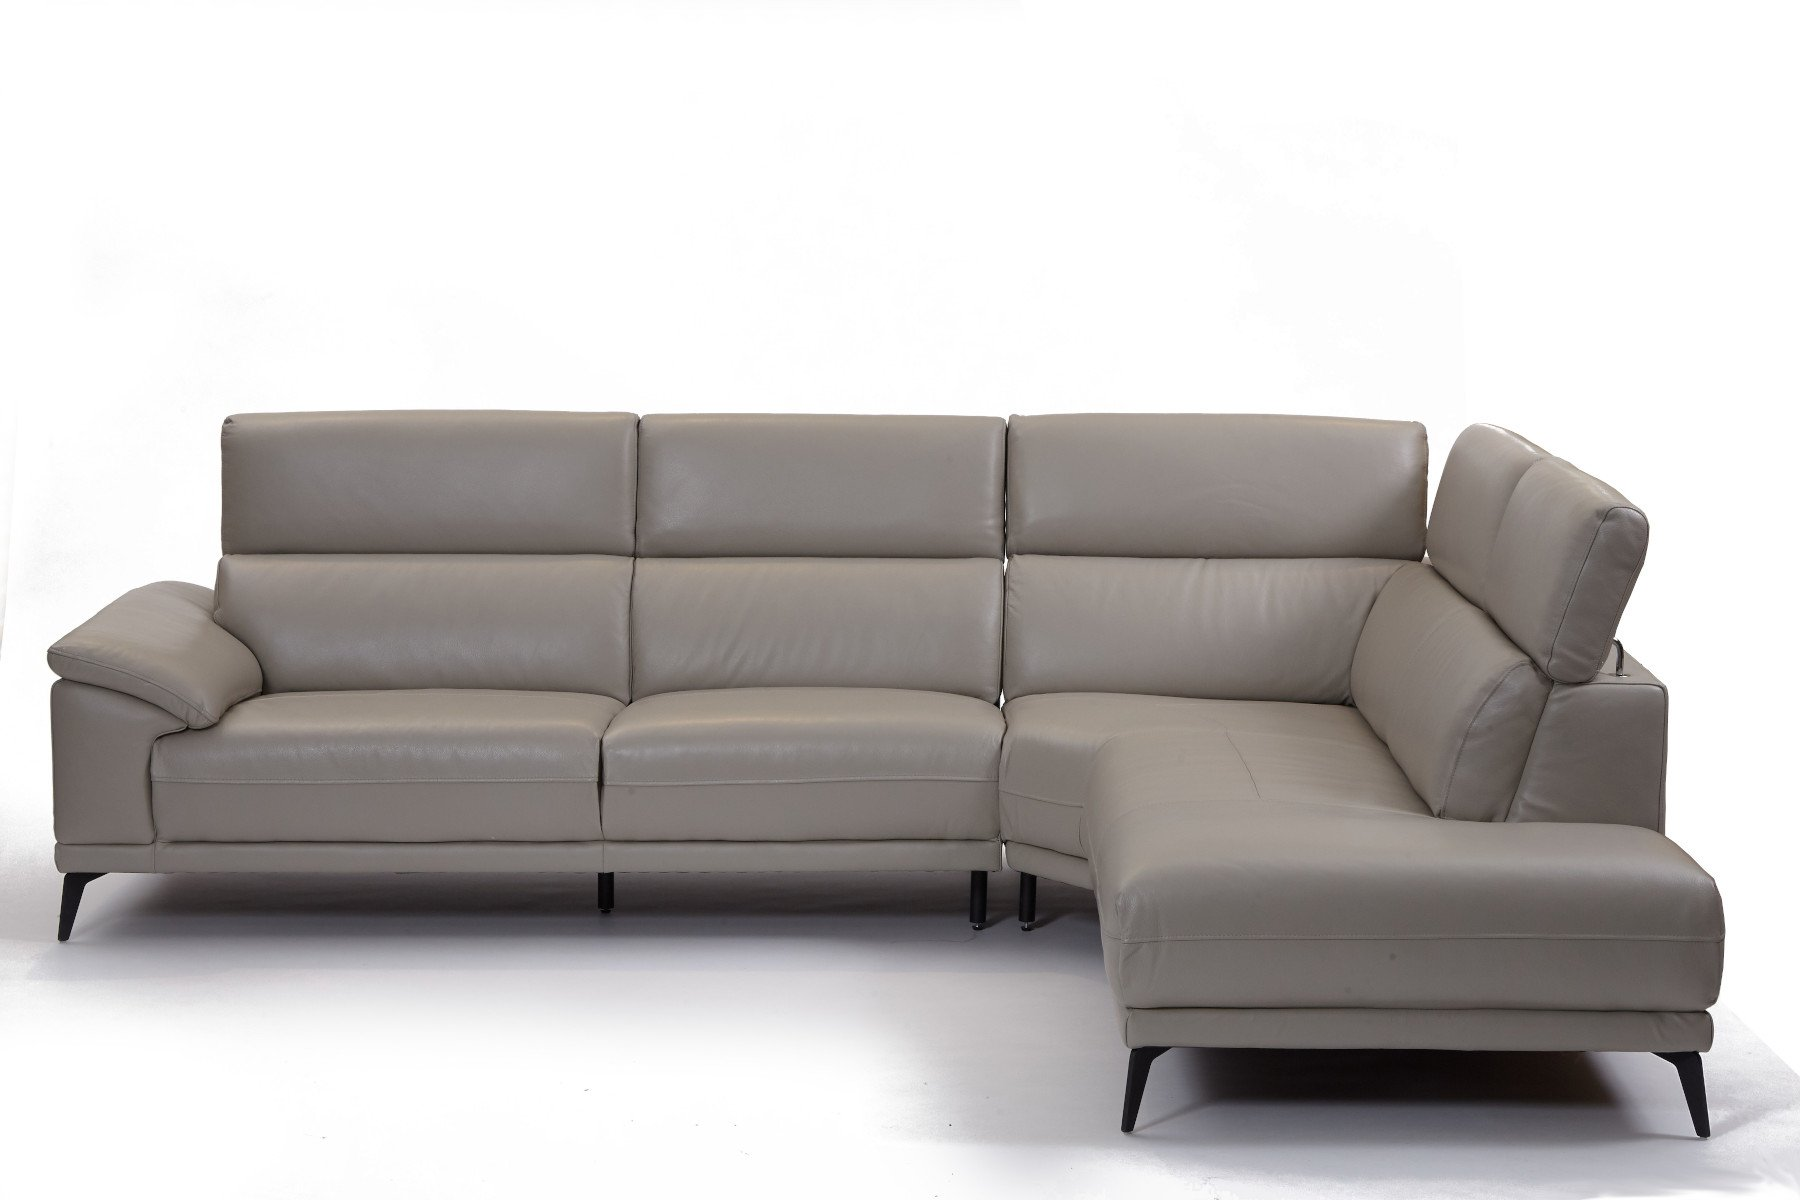 Montero RHF Corner Sofa - Leather